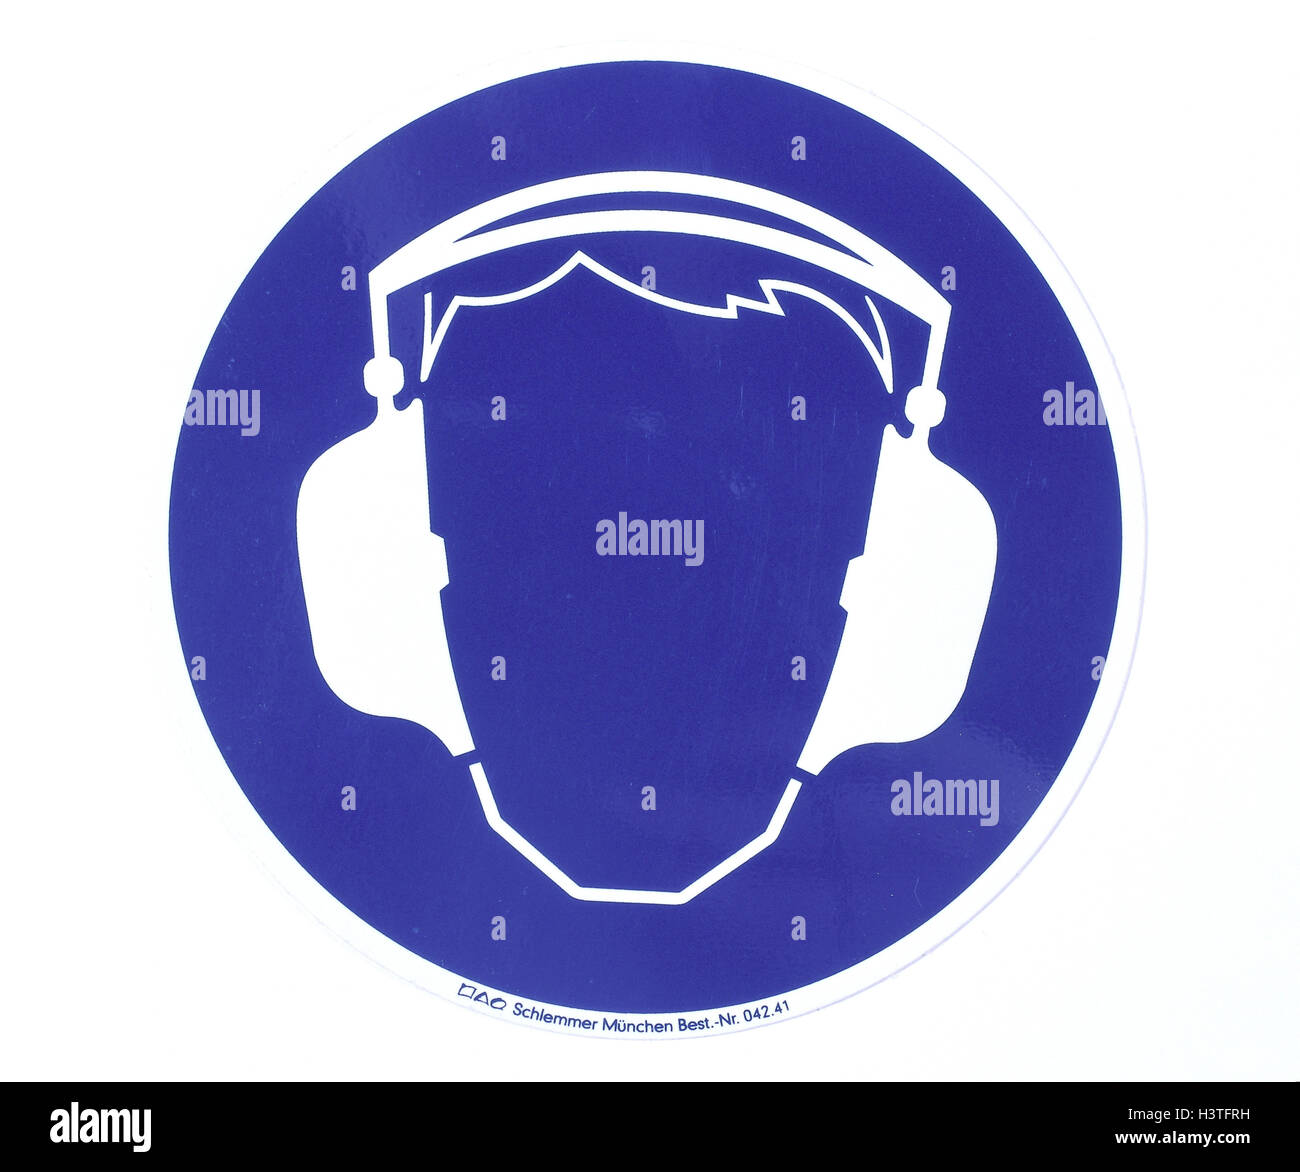 Preventive measure, sign, icon, 'ear defender carry', cut out, warning sign, warning, request, Commandment - Stock Image